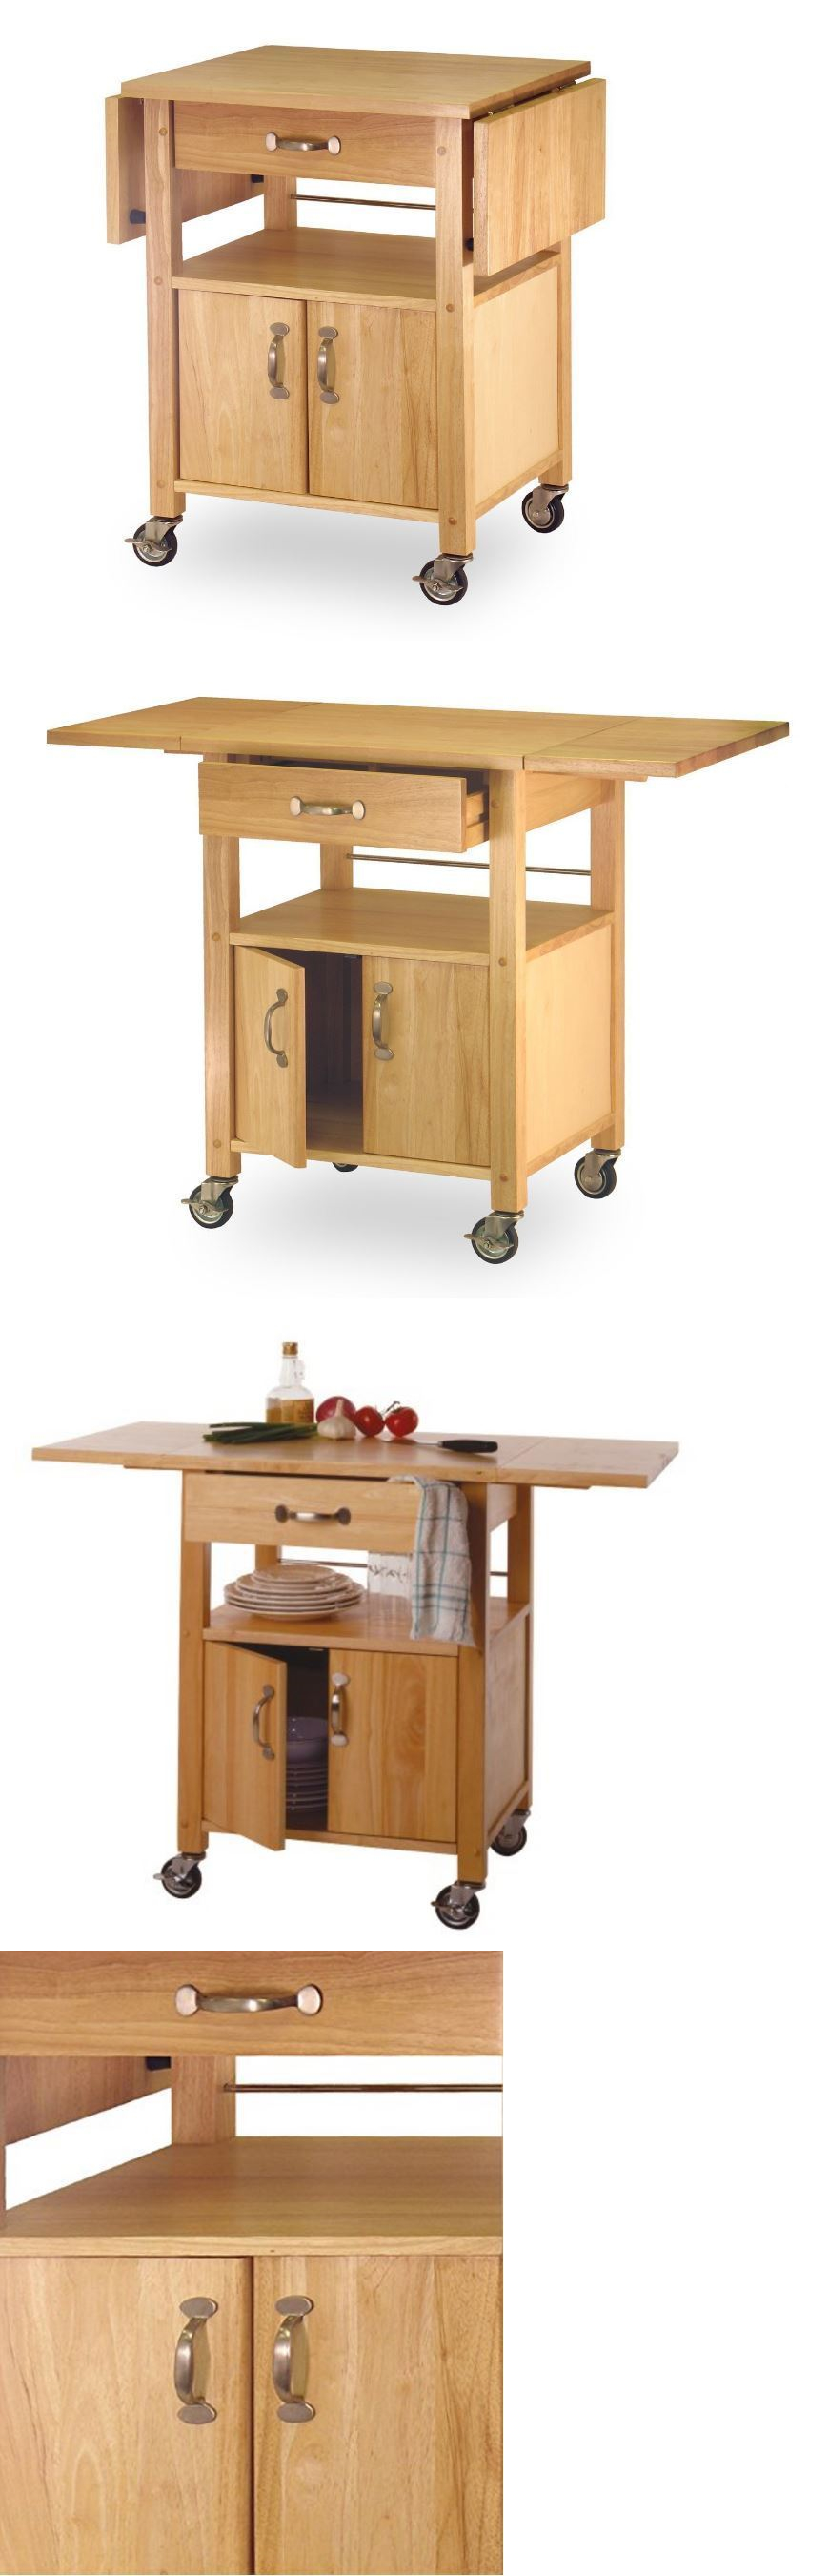 Uncategorized Kitchen Appliance Wheels kitchen islands carts 115753 appliance cart microwave stand on wheels with storage sale